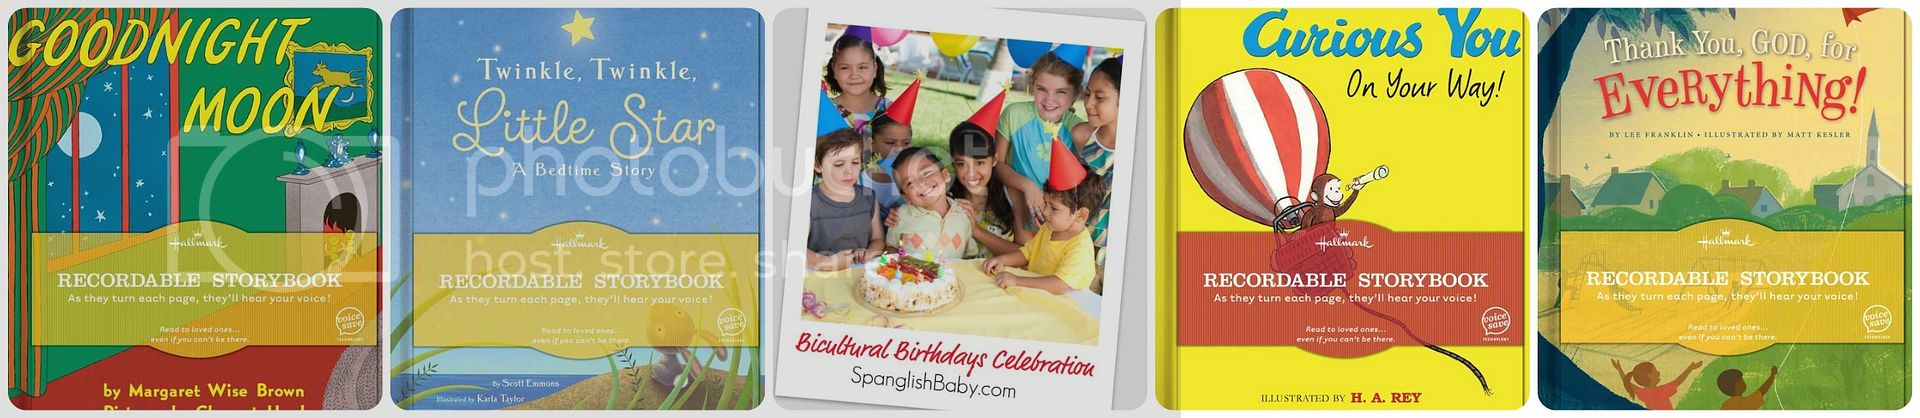 Hallmark recordable storybook giveaway bicultural birthday celebrations